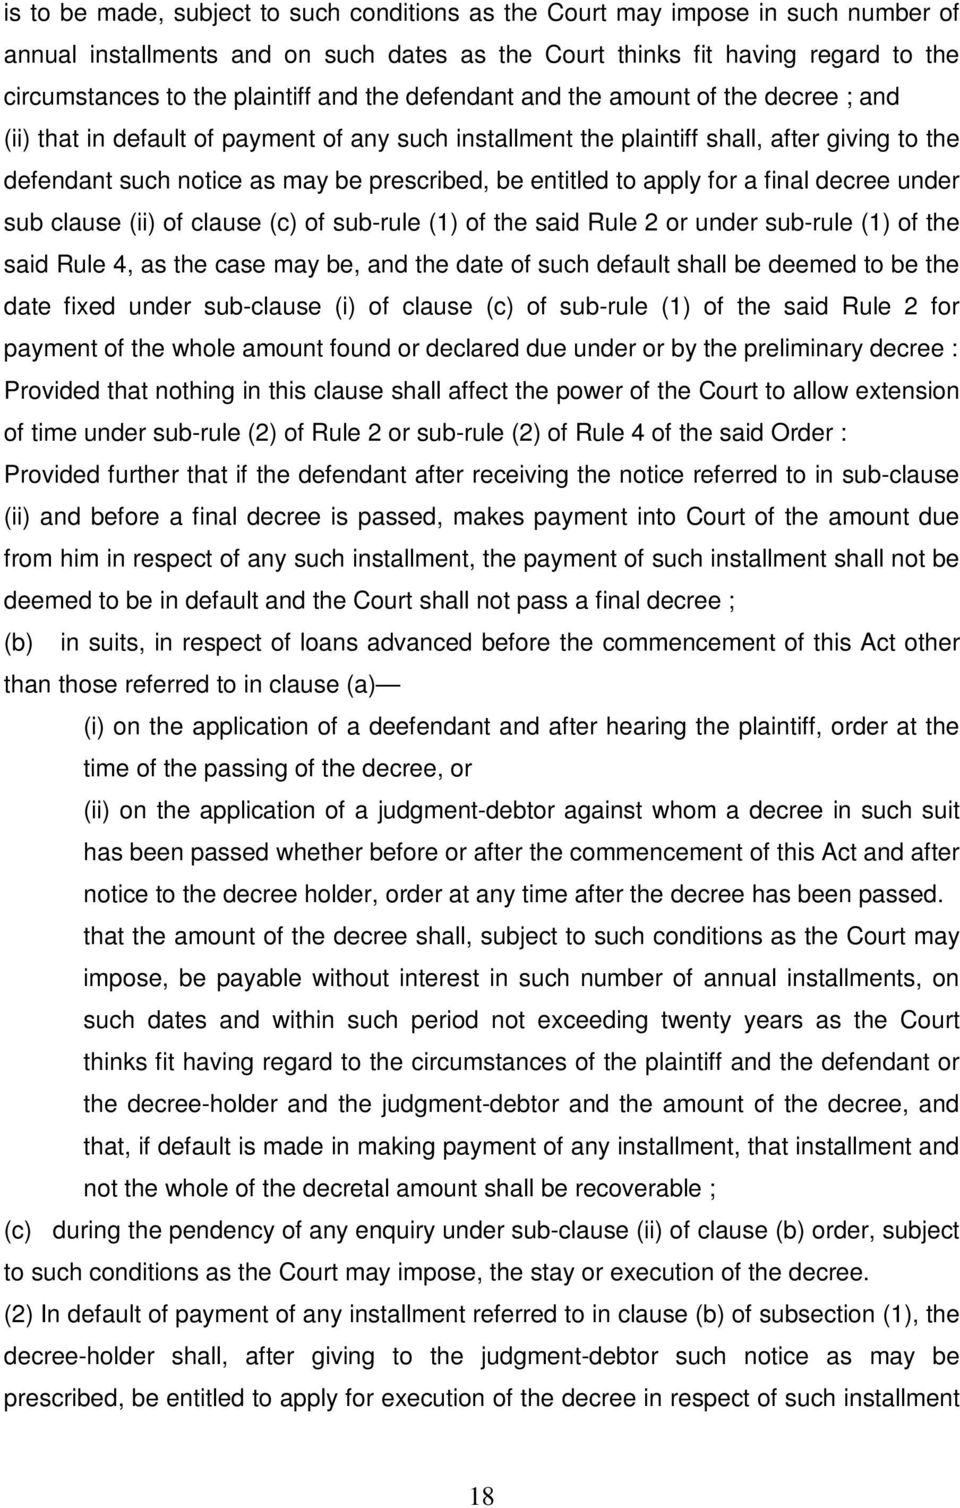 entitled to apply for a final decree under sub clause (ii) of clause (c) of sub-rule (1) of the said Rule 2 or under sub-rule (1) of the said Rule 4, as the case may be, and the date of such default